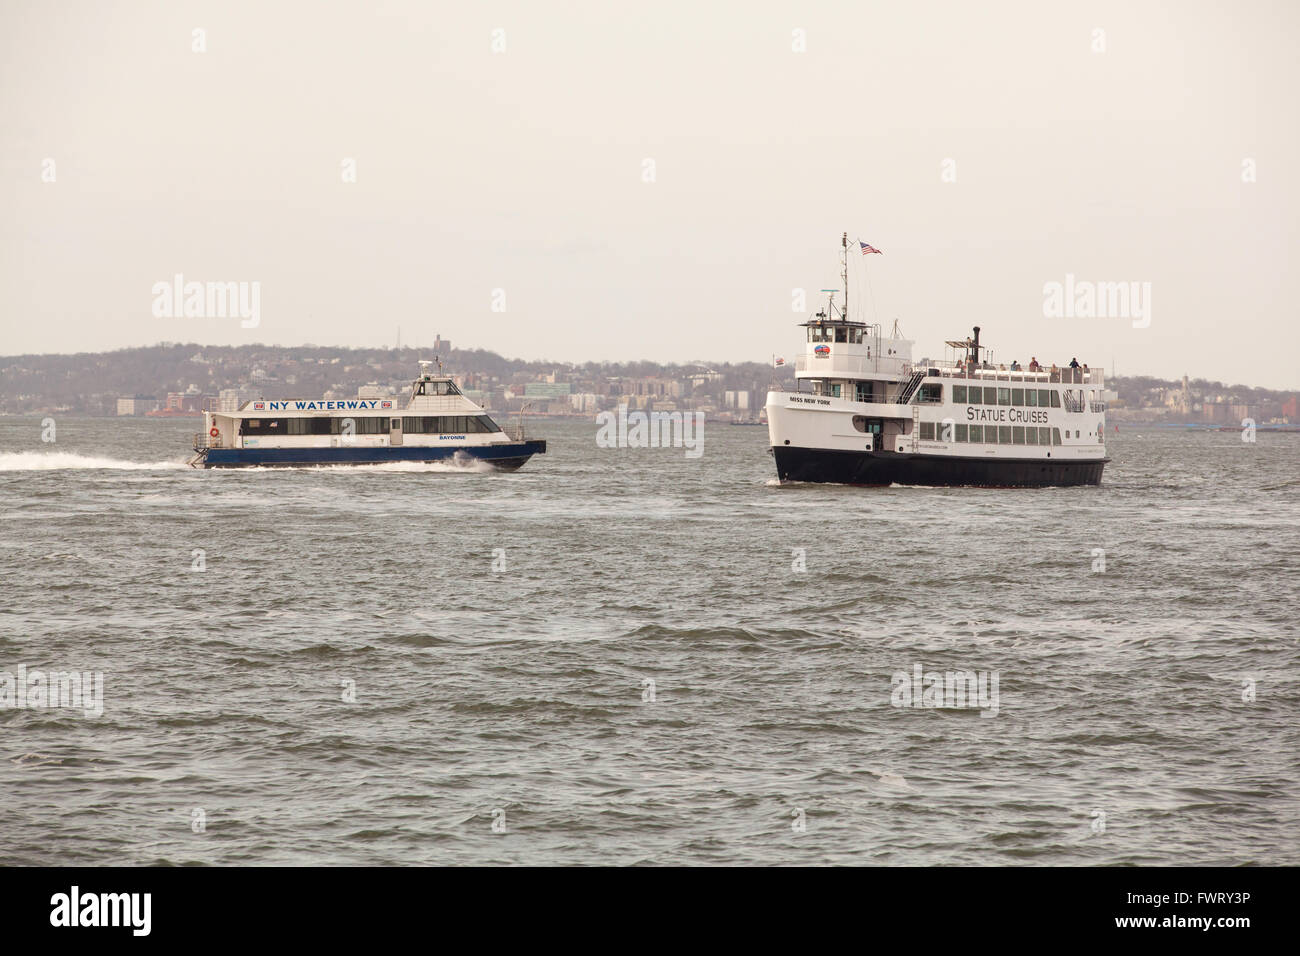 Statue Cruises Ferry Boat On Hudson River Taking Tourists To